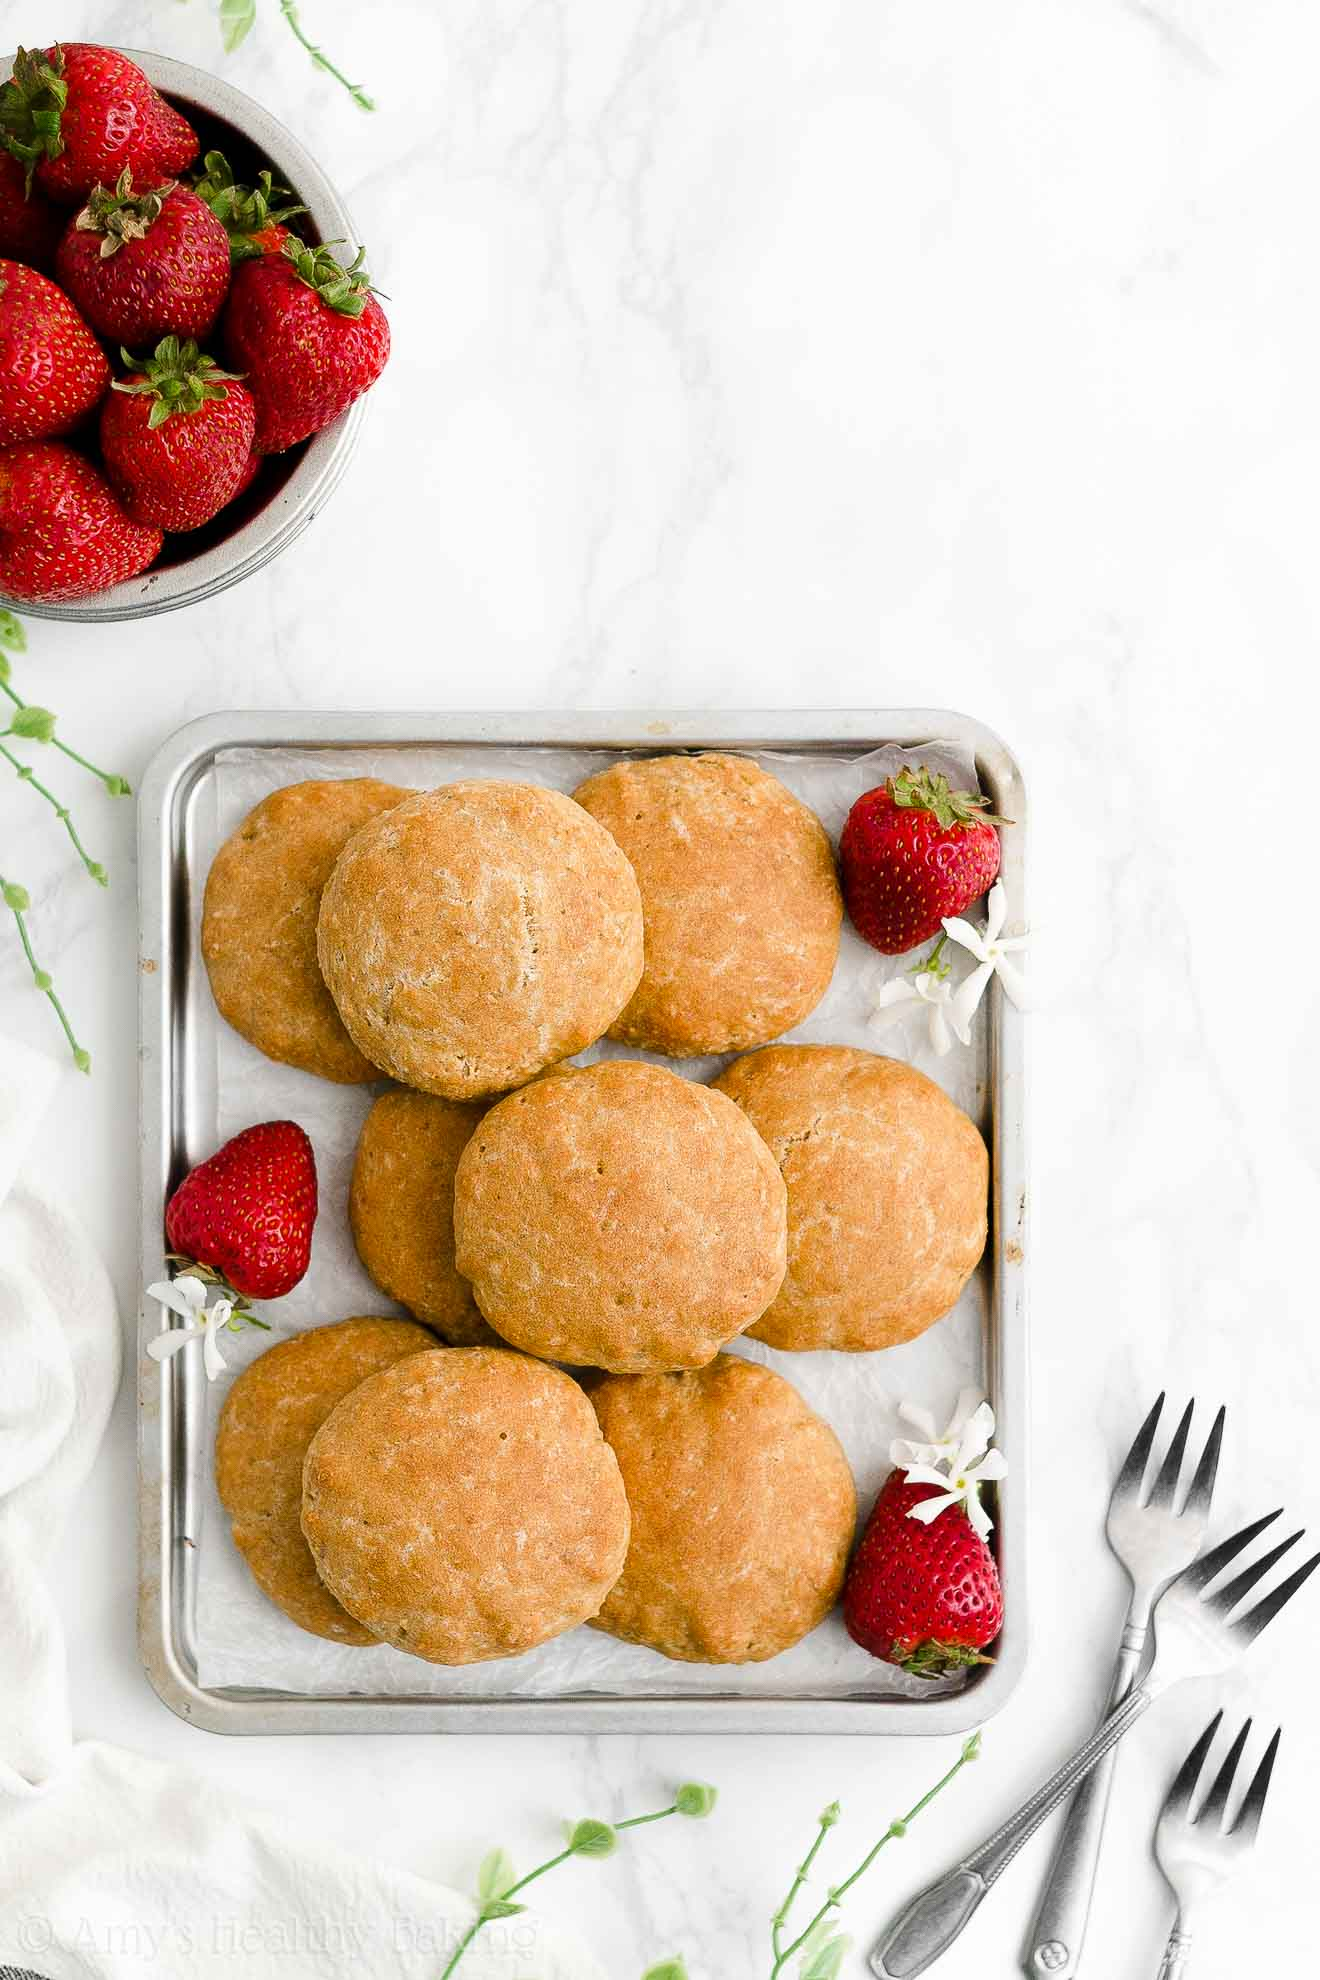 Best Healthy Low Fat Clean Eating Eggless Gluten Free Strawberry Shortcakes